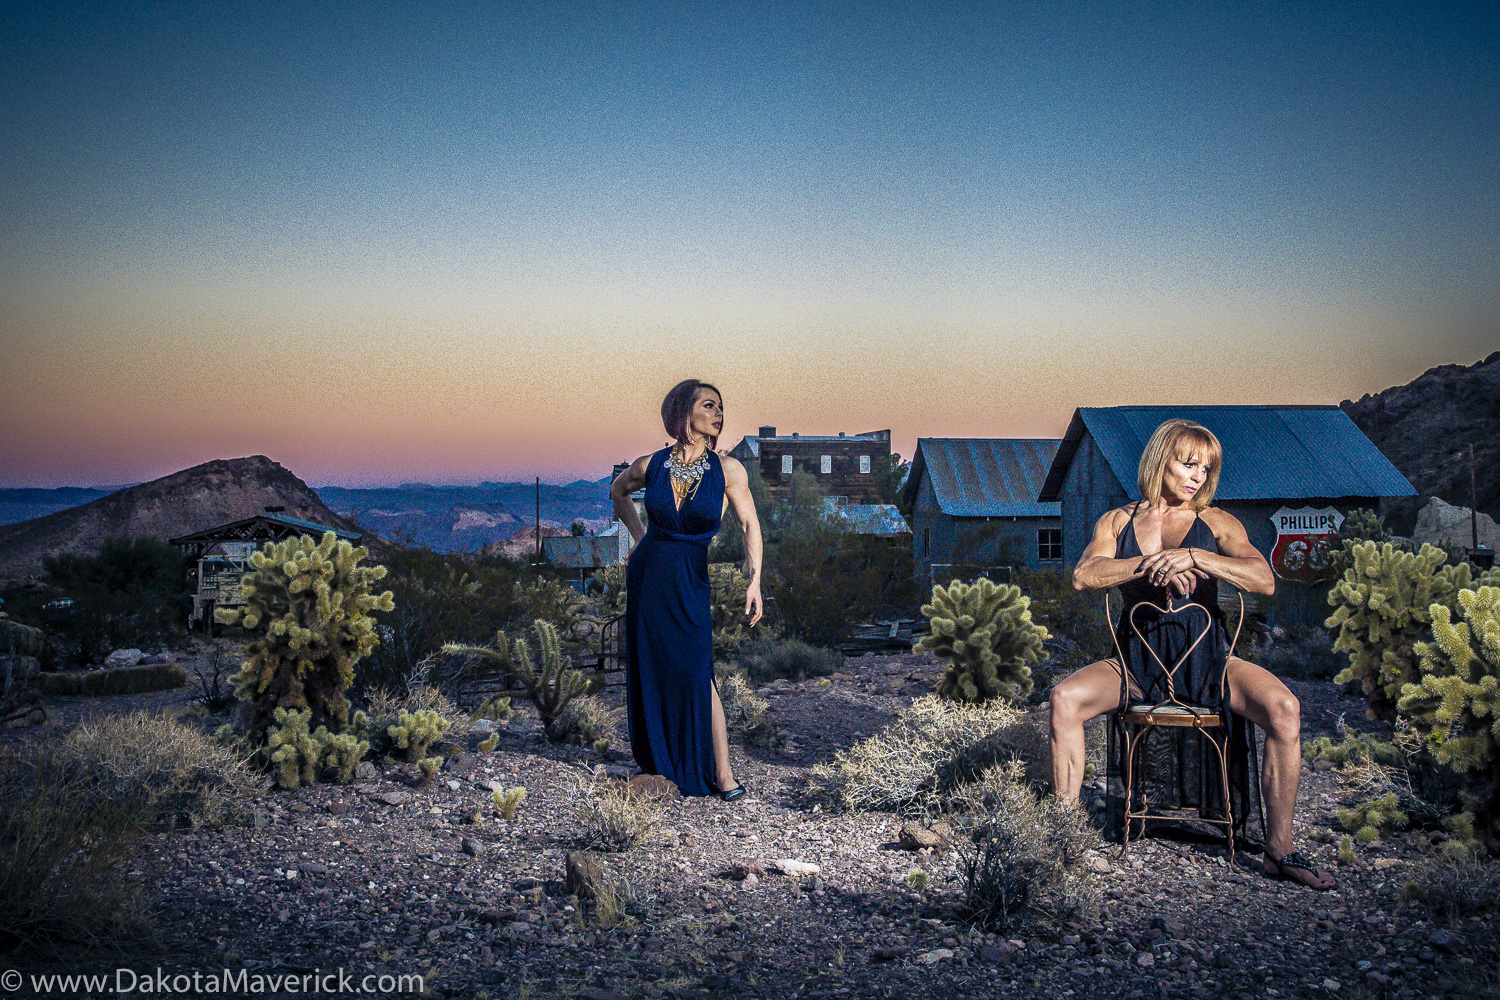 Vancouver Fitness Photographer - Nelson Ghost Town, Nevada - Fashion Fitness Shoot (35 of 40).jpg